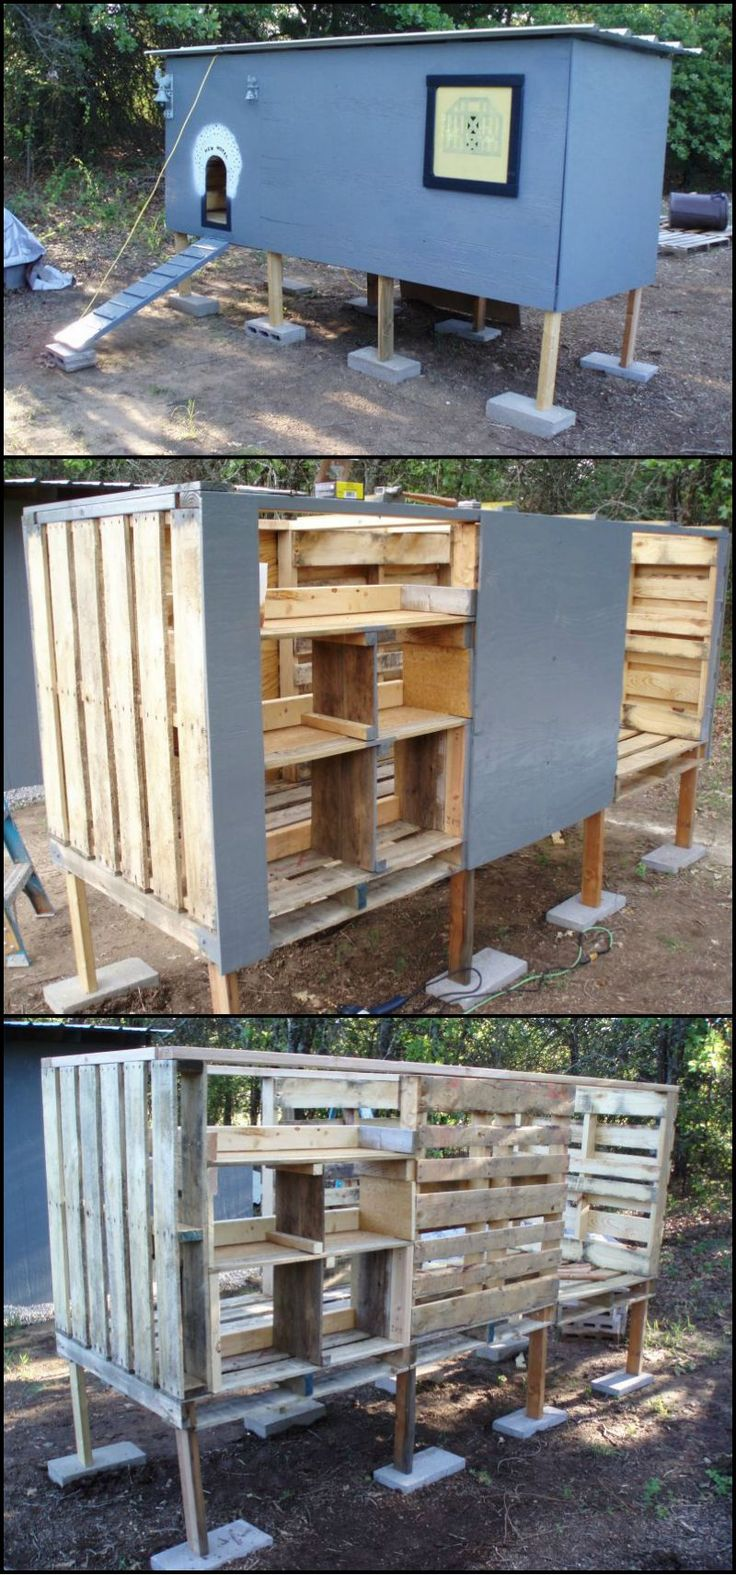 Hühnerstall Kreativ Building A Chicken Coop From Pallets - Woodworking